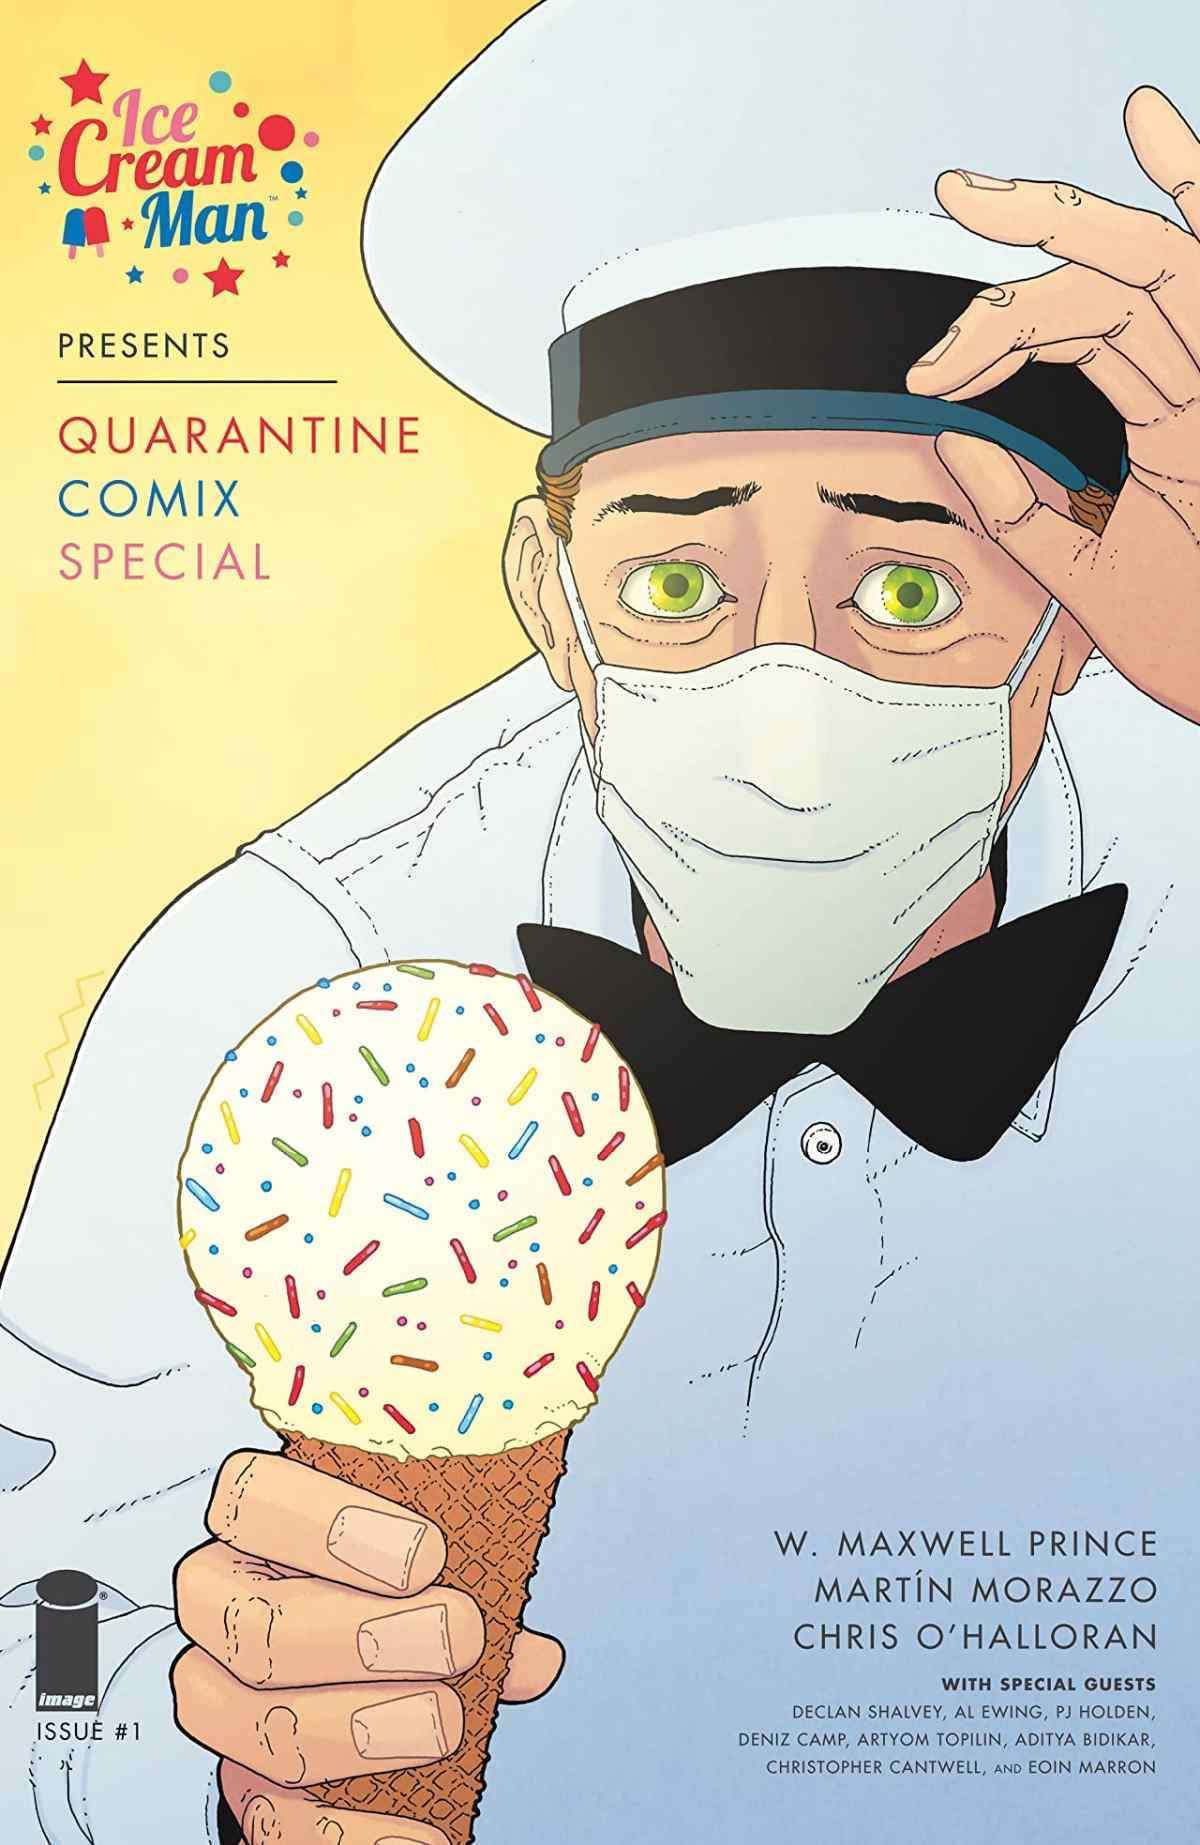 Ice Cream Man Presents Quarantine Comix Special #1